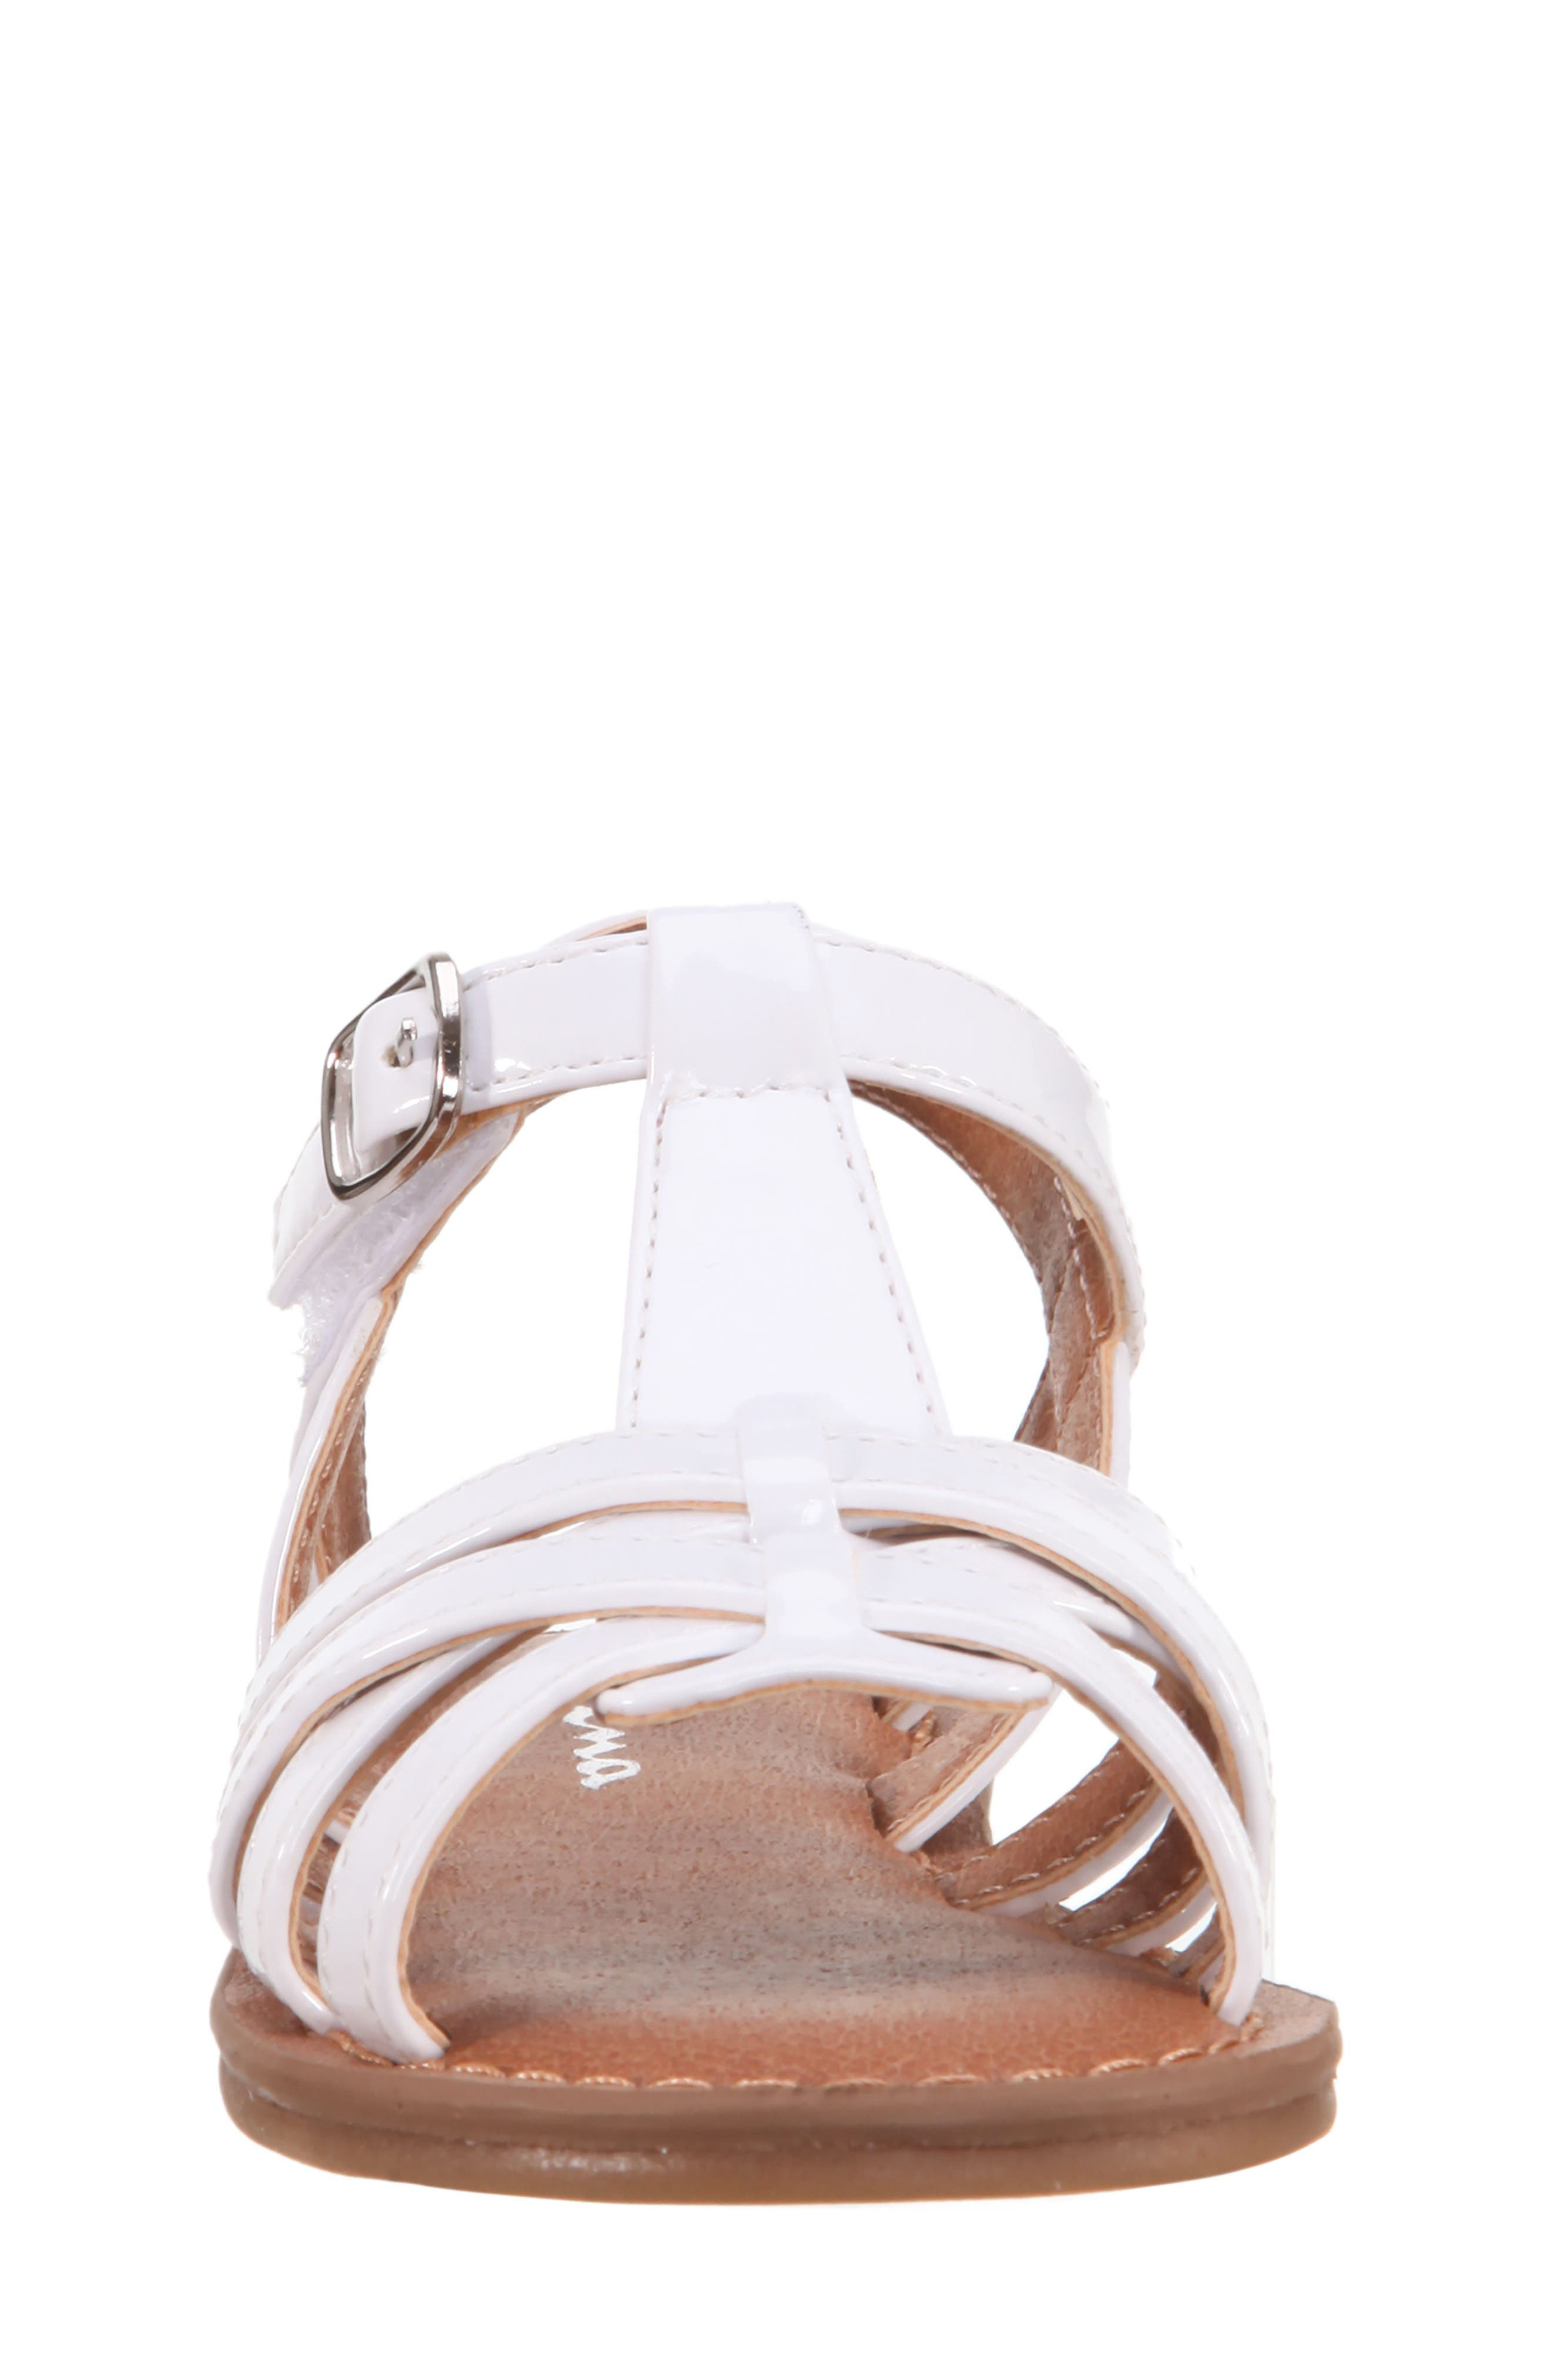 Thereasa Ankle Strap Sandal,                             Alternate thumbnail 4, color,                             White Patent